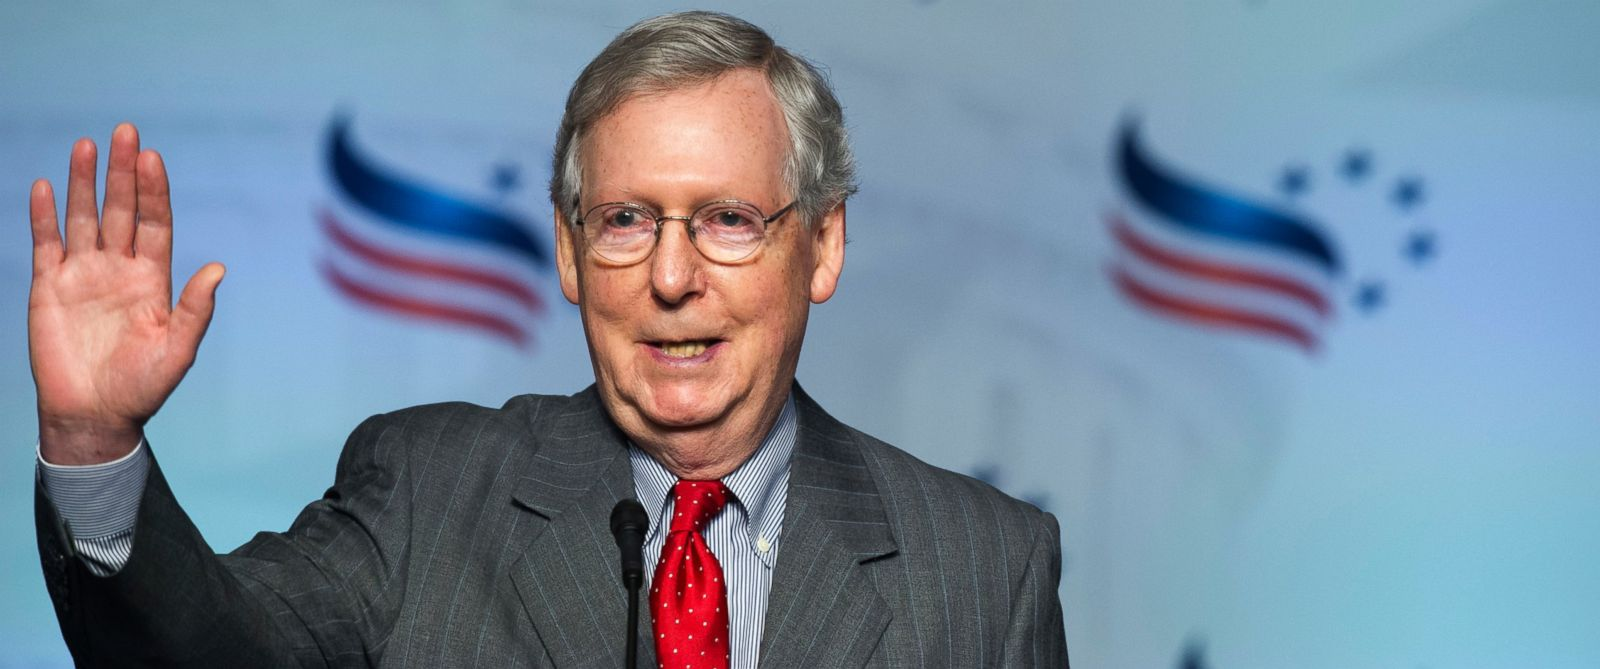 mitch mcconnell - photo #21